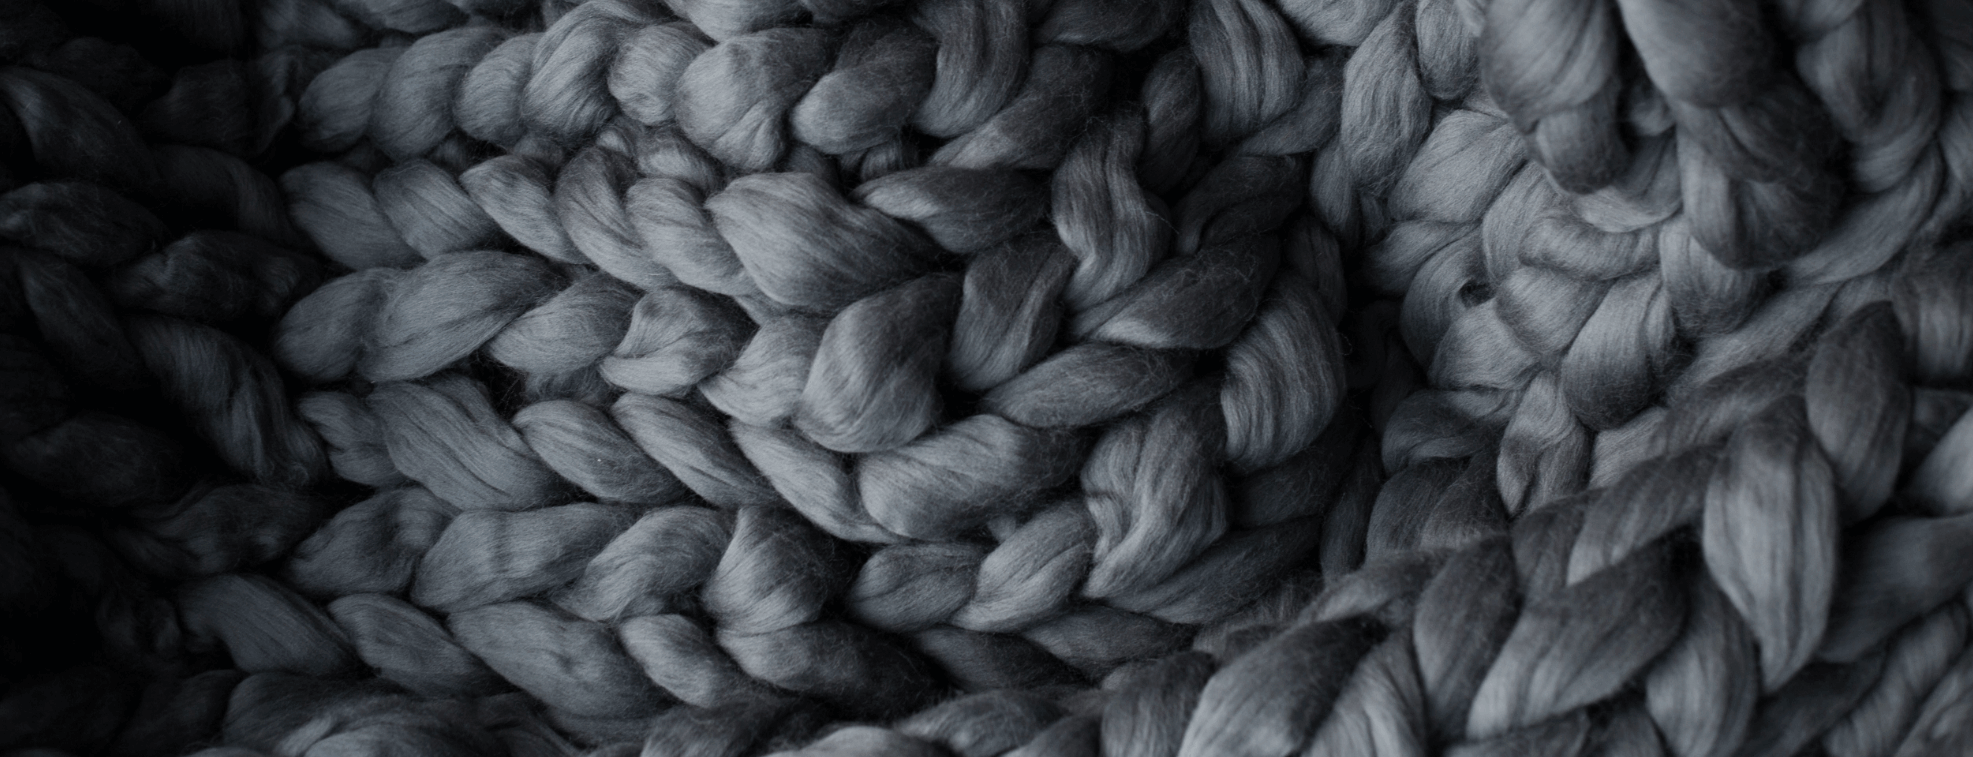 Knitted grey fabric with large knittings